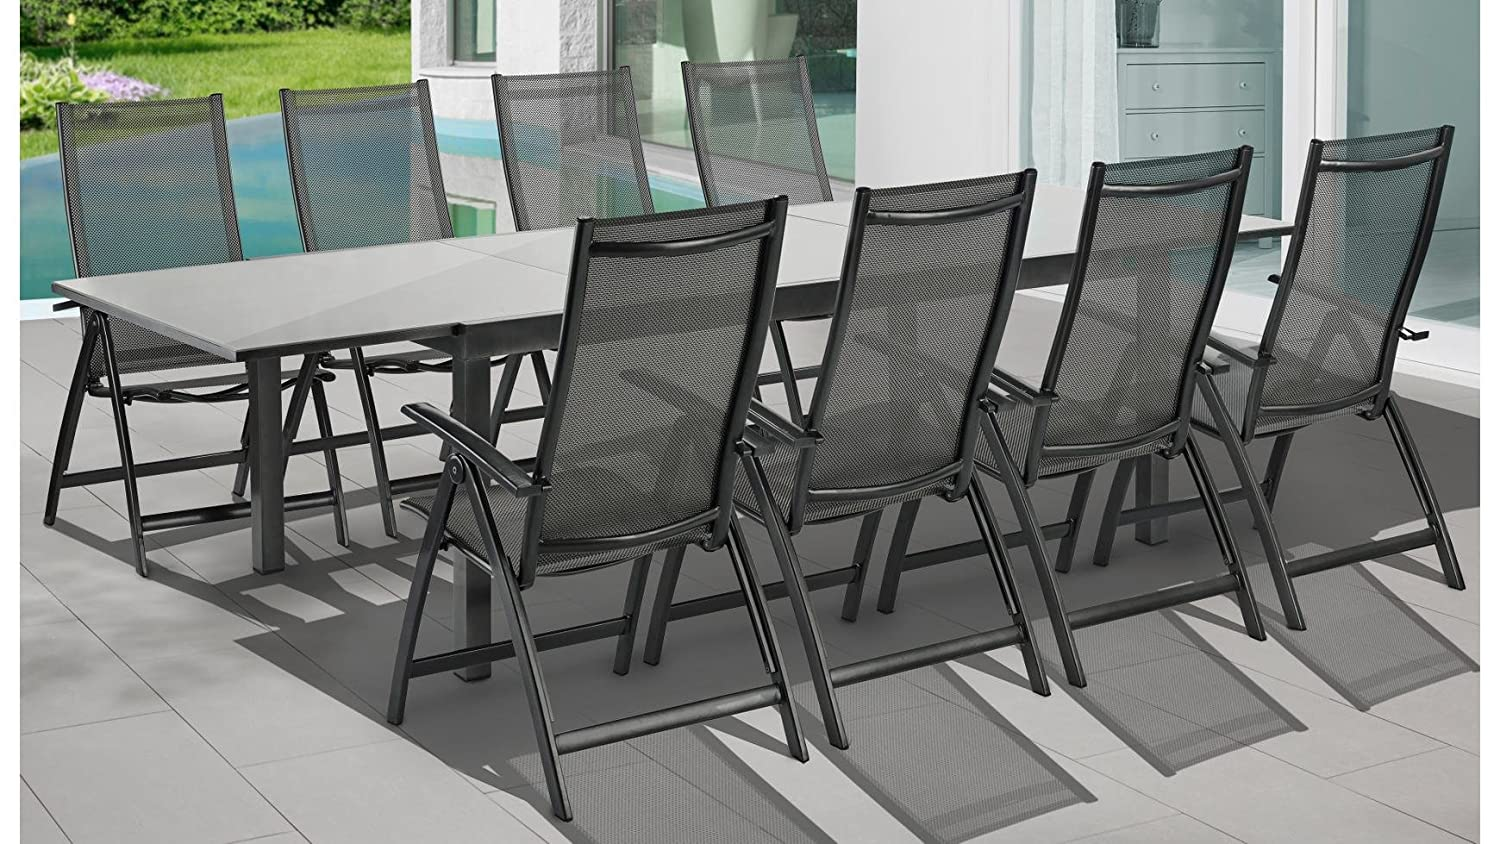 merxx gartenm belset vicenza 9 tgl 8 klappsessel tisch 200 300 cm alu textil grau. Black Bedroom Furniture Sets. Home Design Ideas